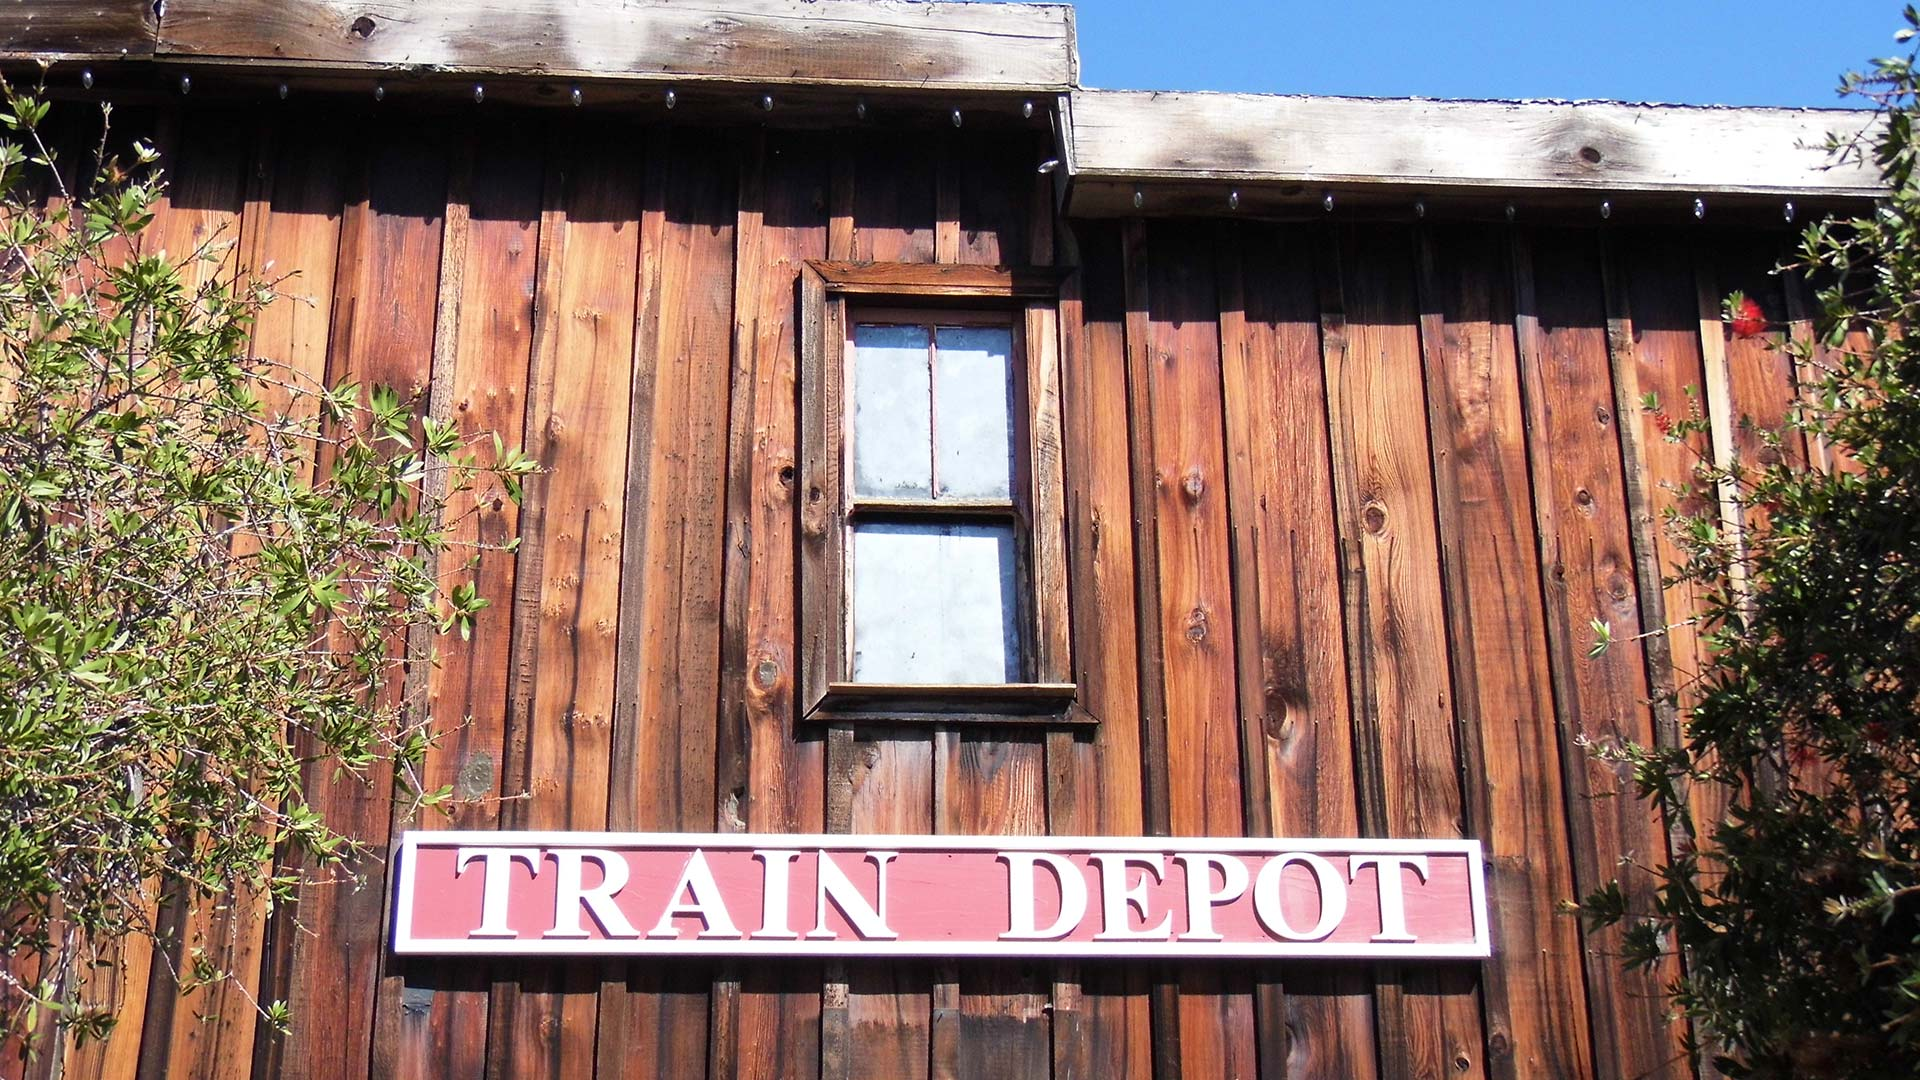 The old train depot at the Heritage Park Village Museum.